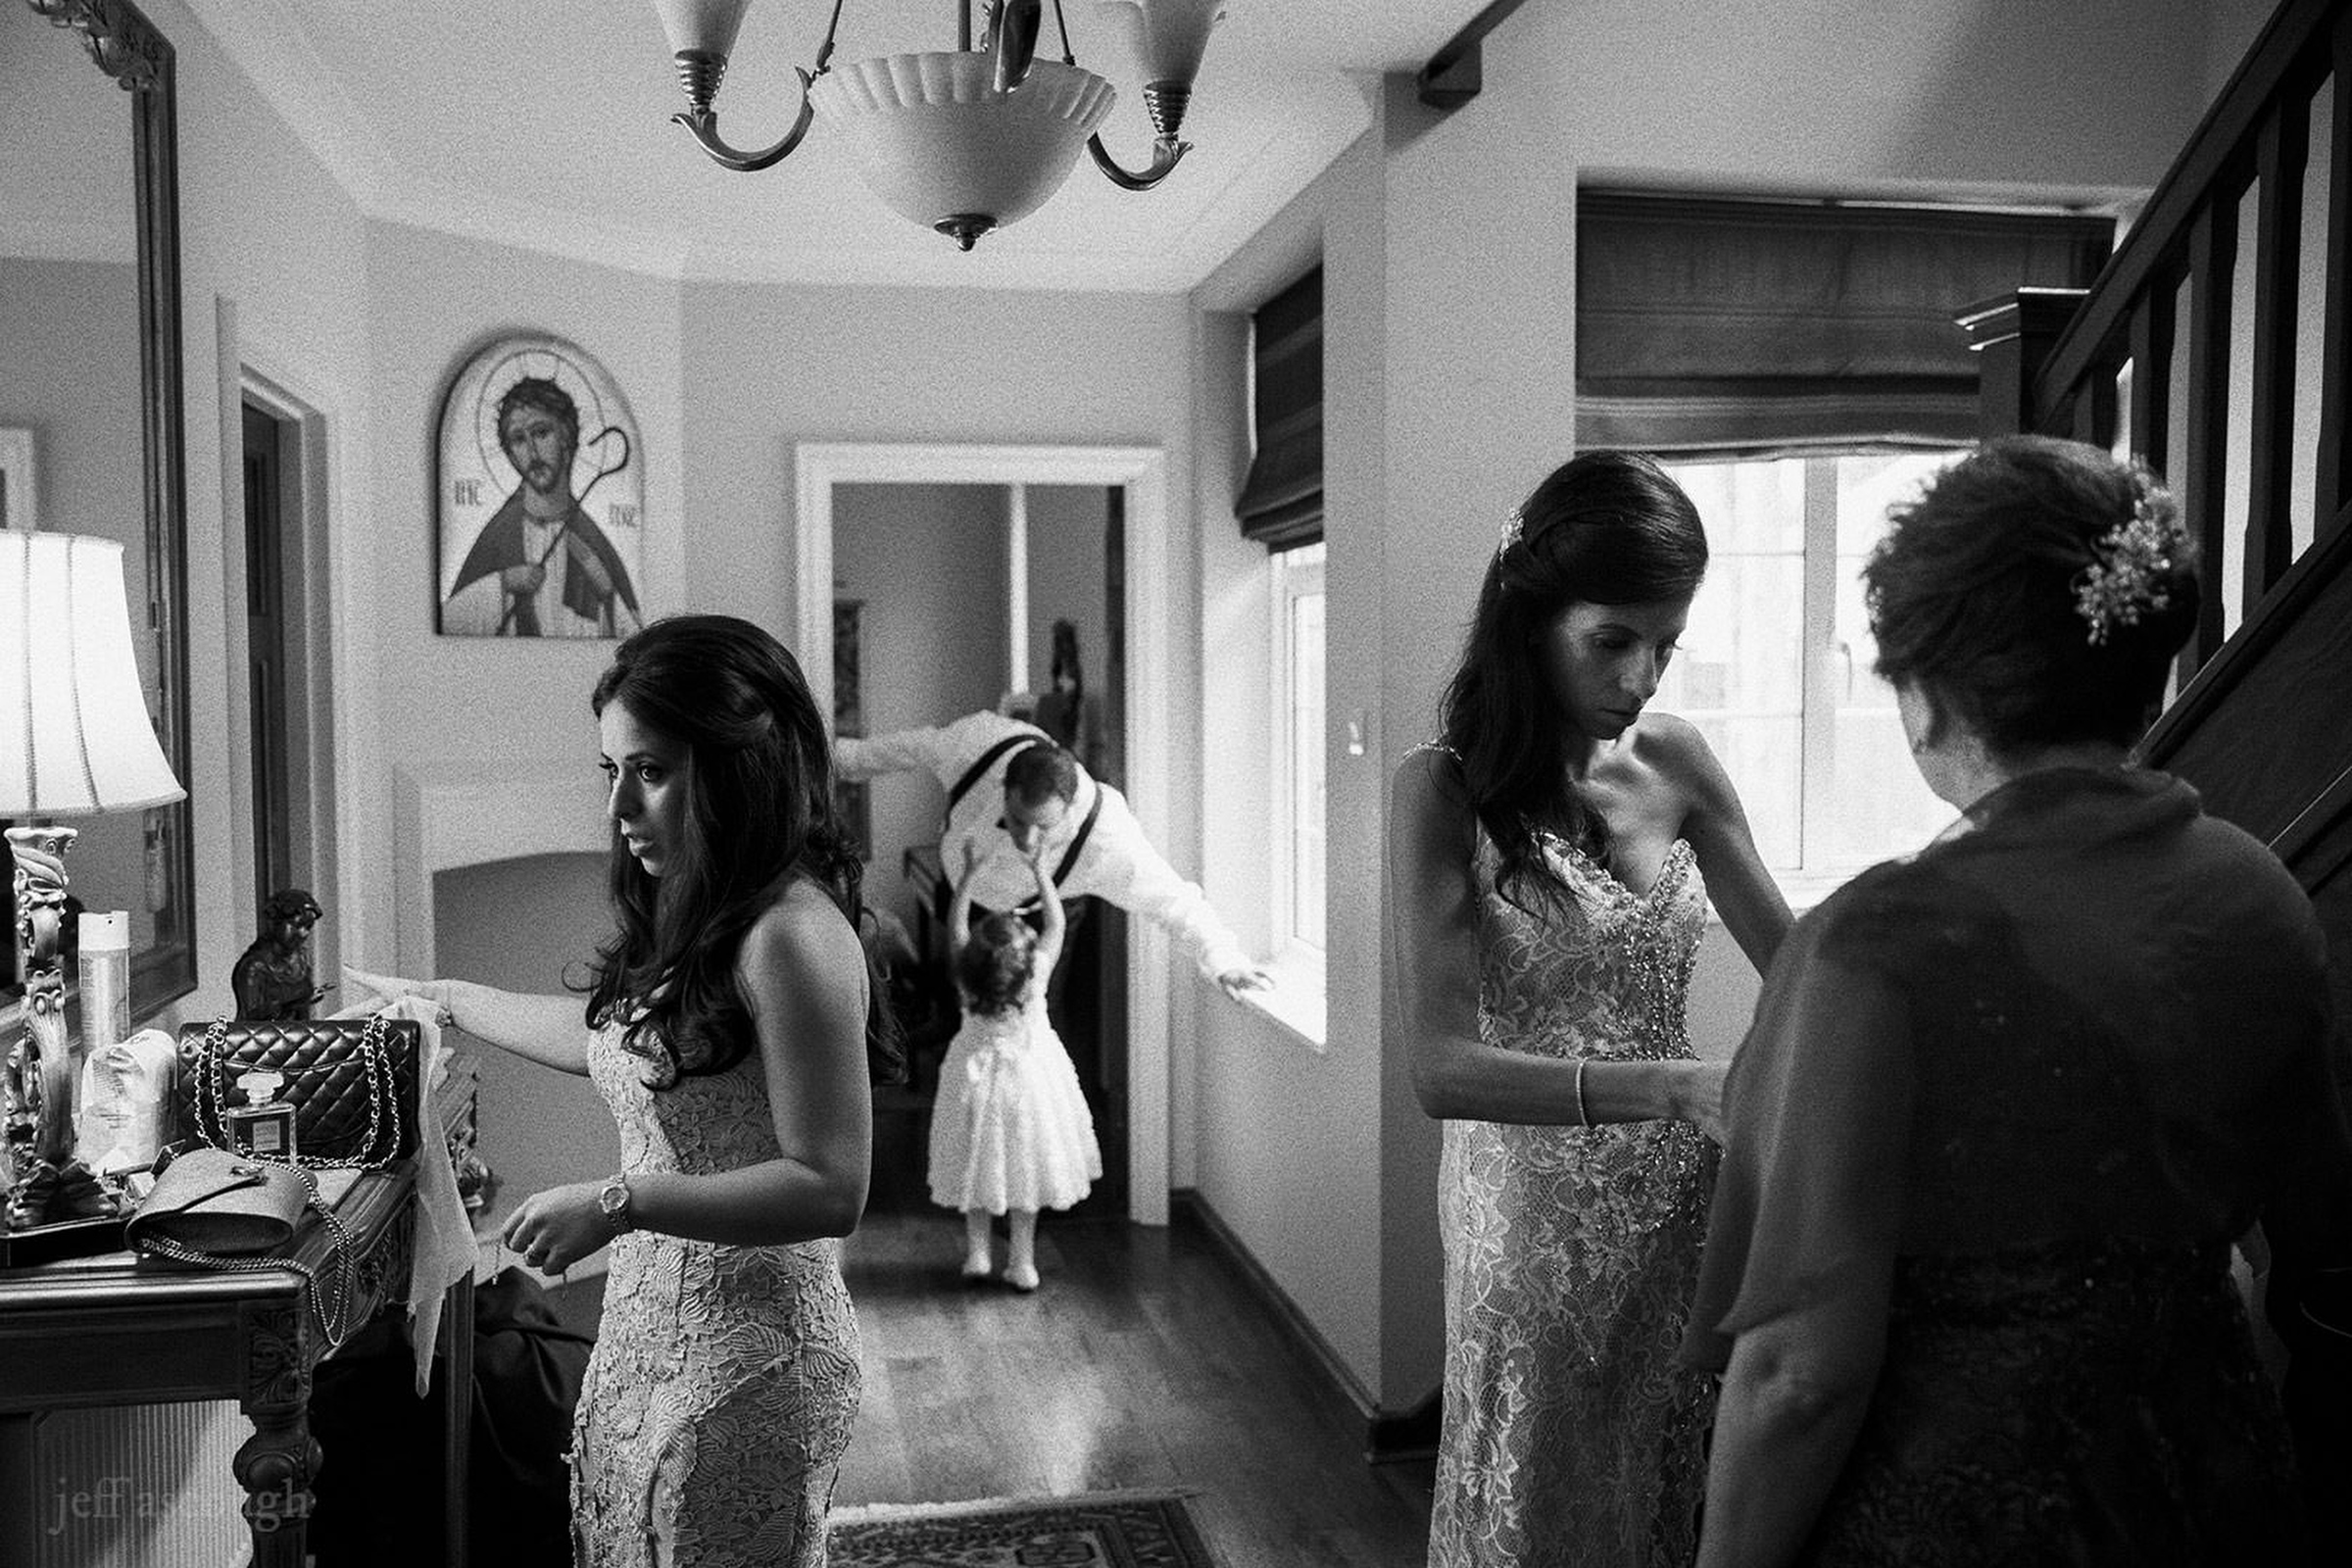 Bridal party getting ready by Jeff Ascough